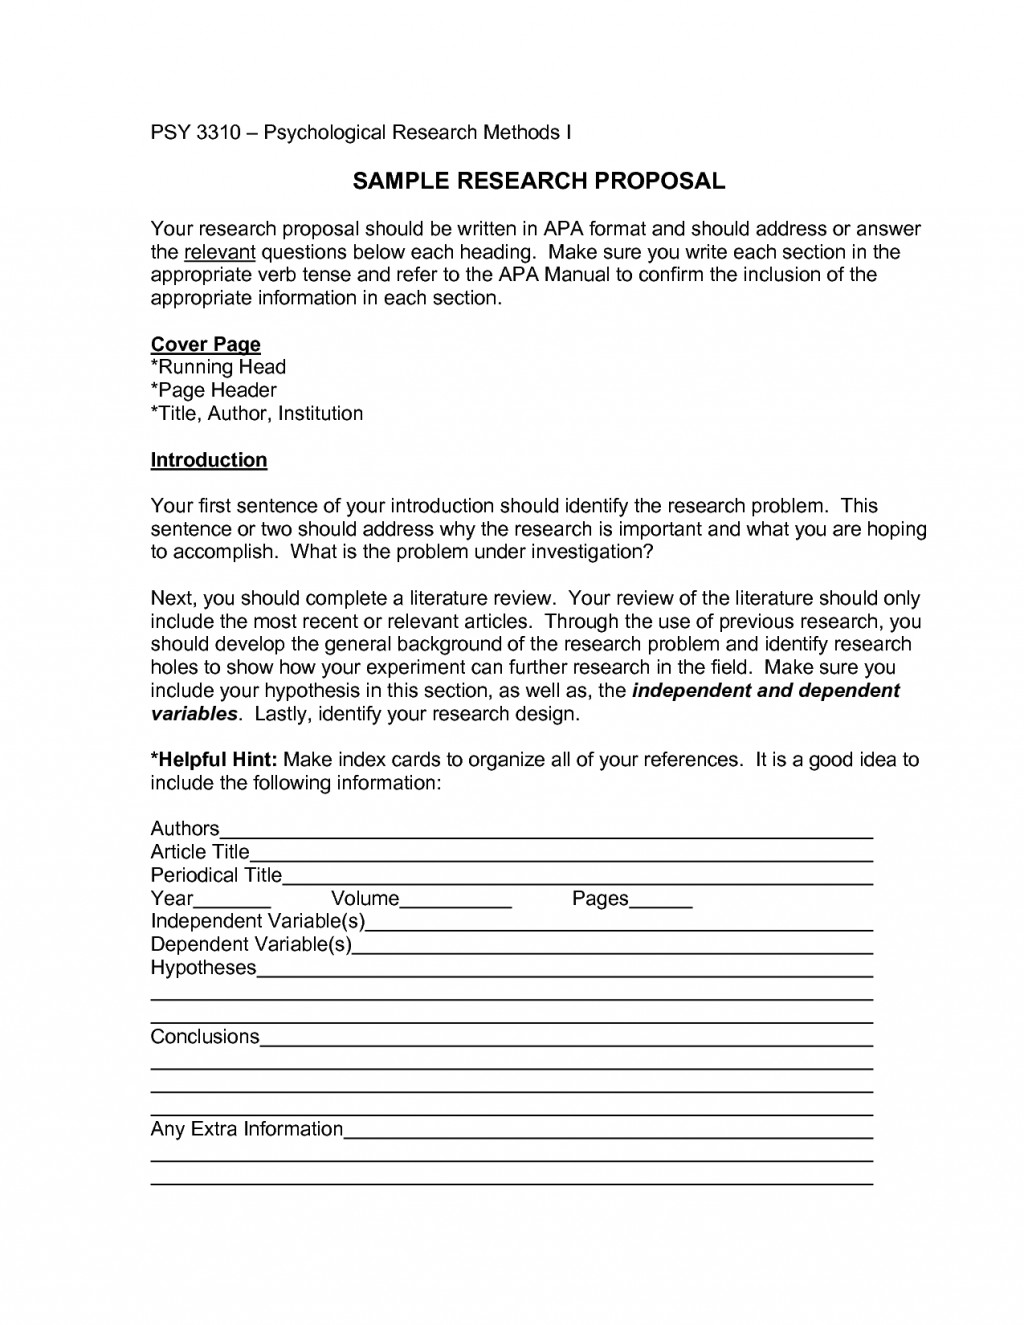 012 Research Paper Proposalpa Format Example 542911 How To Write Amazing A Proposal Apa Large